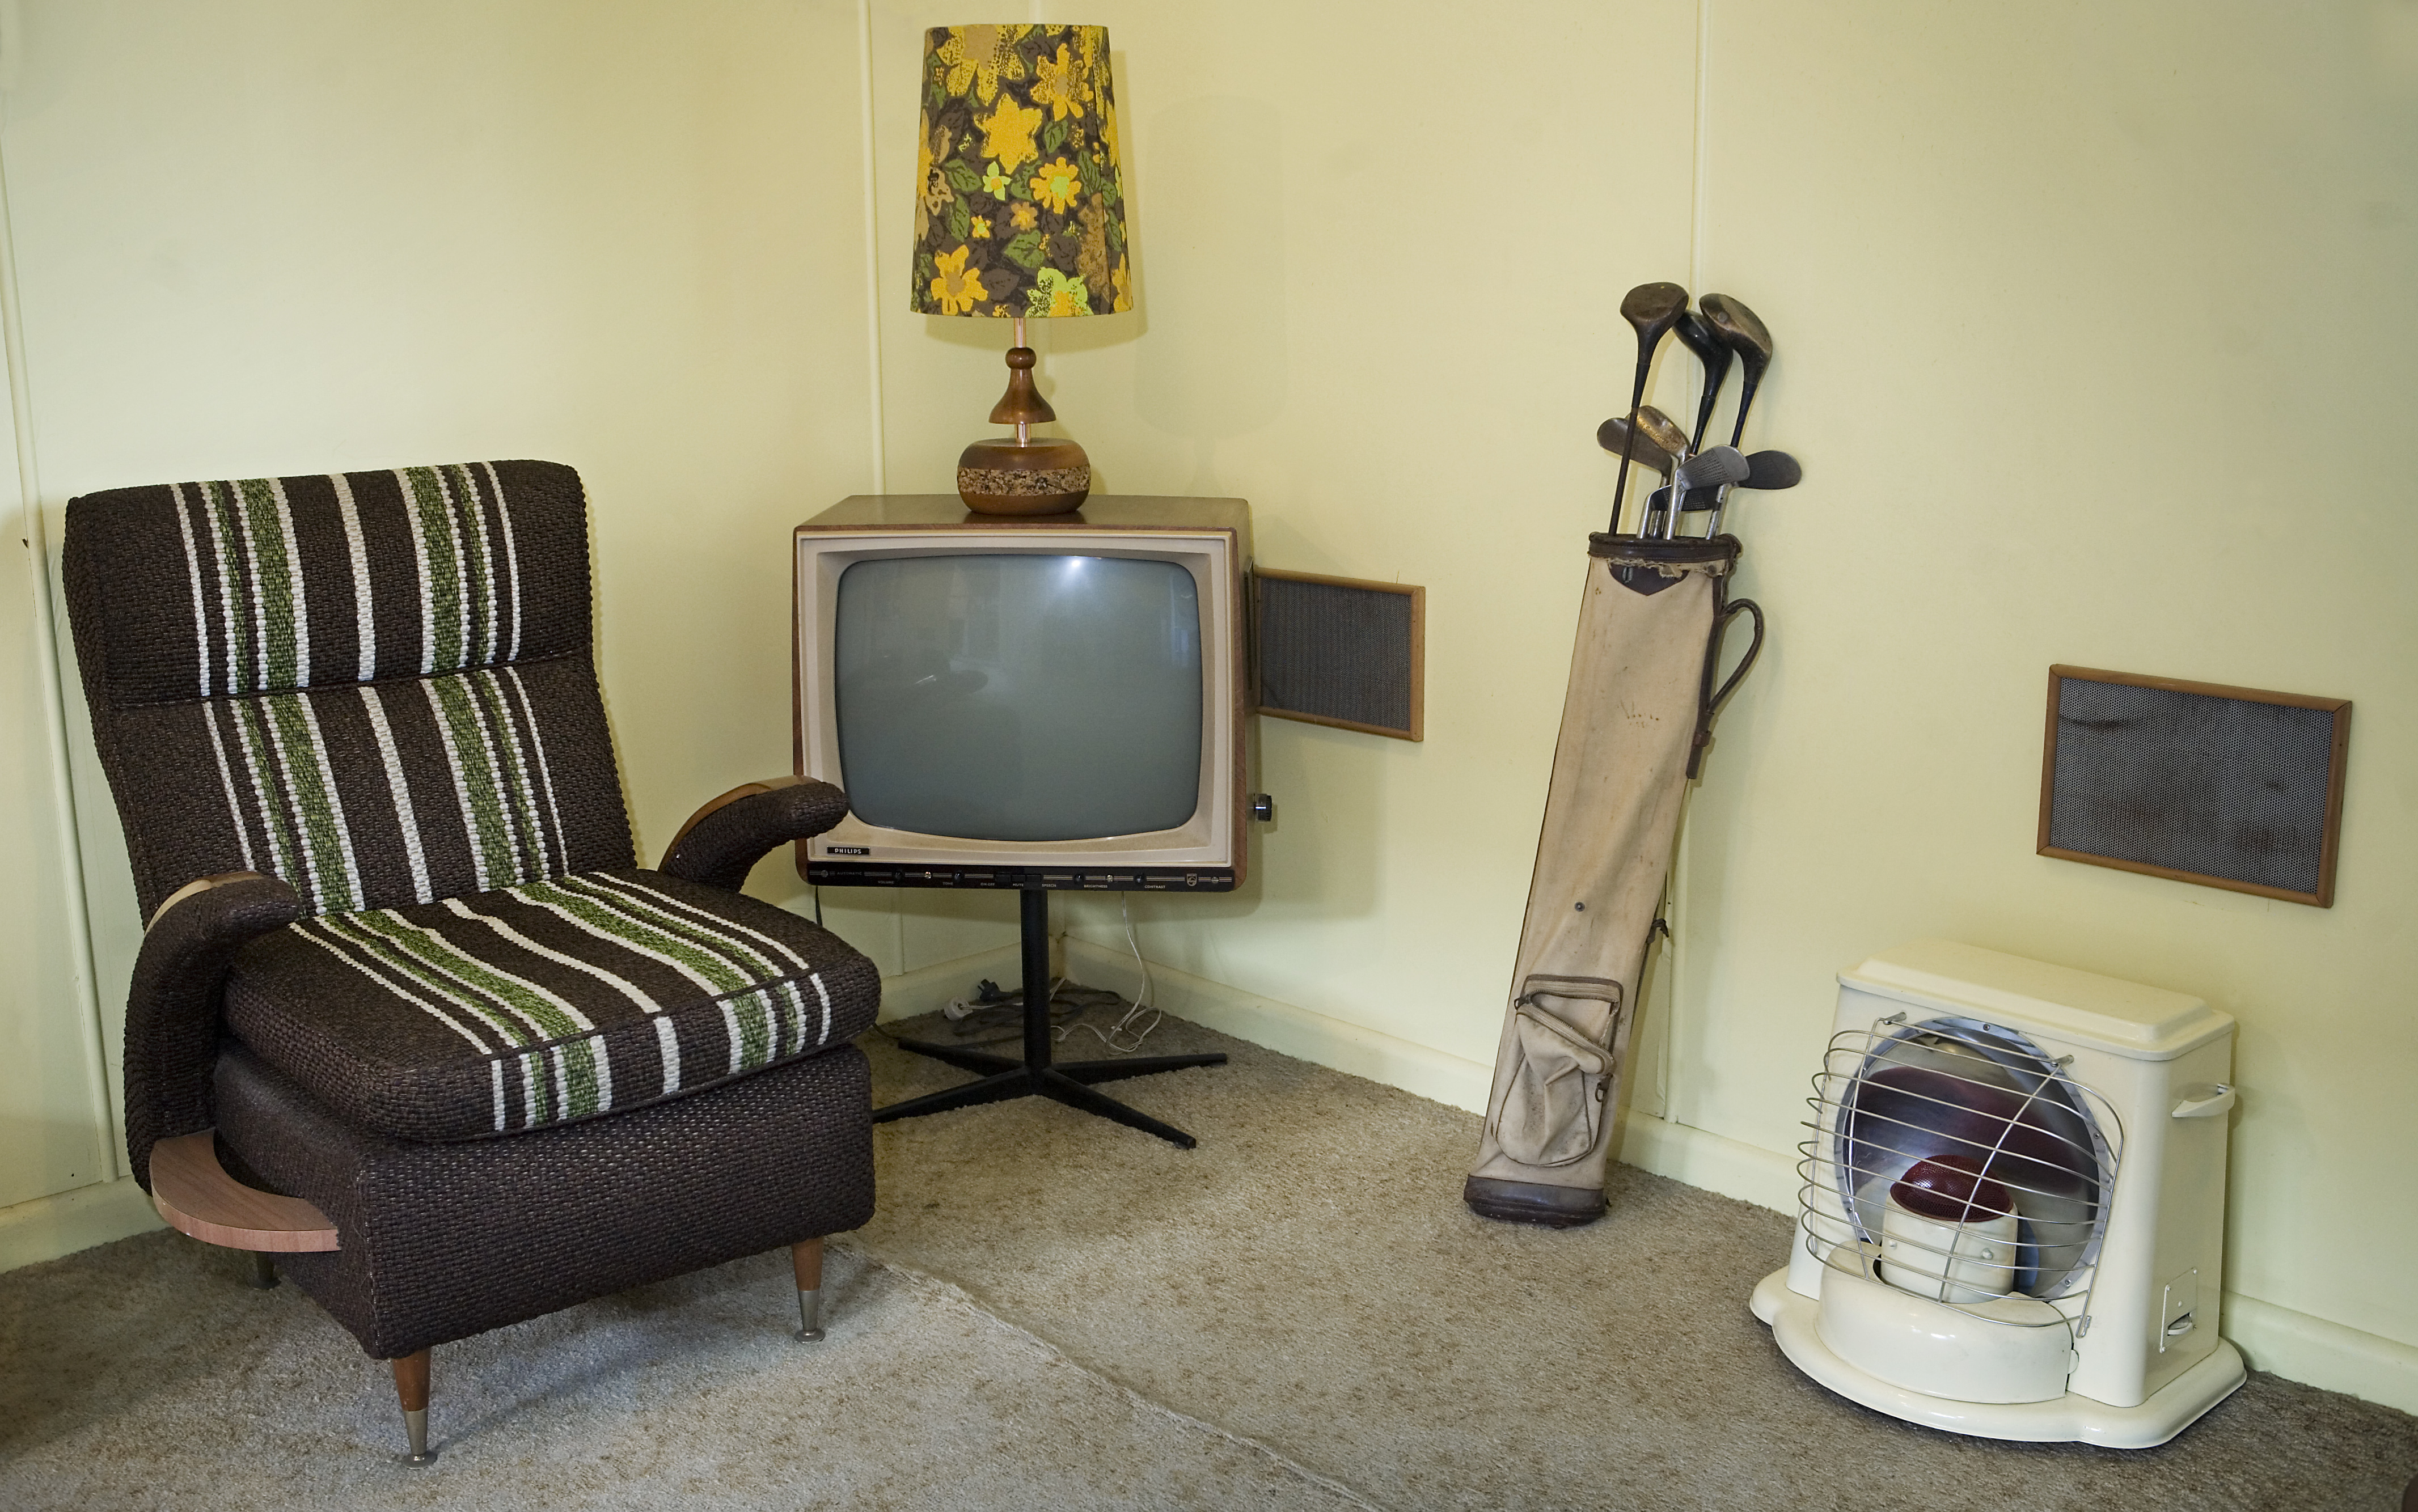 FileTV set Golf clubs and other furniture in a beach house